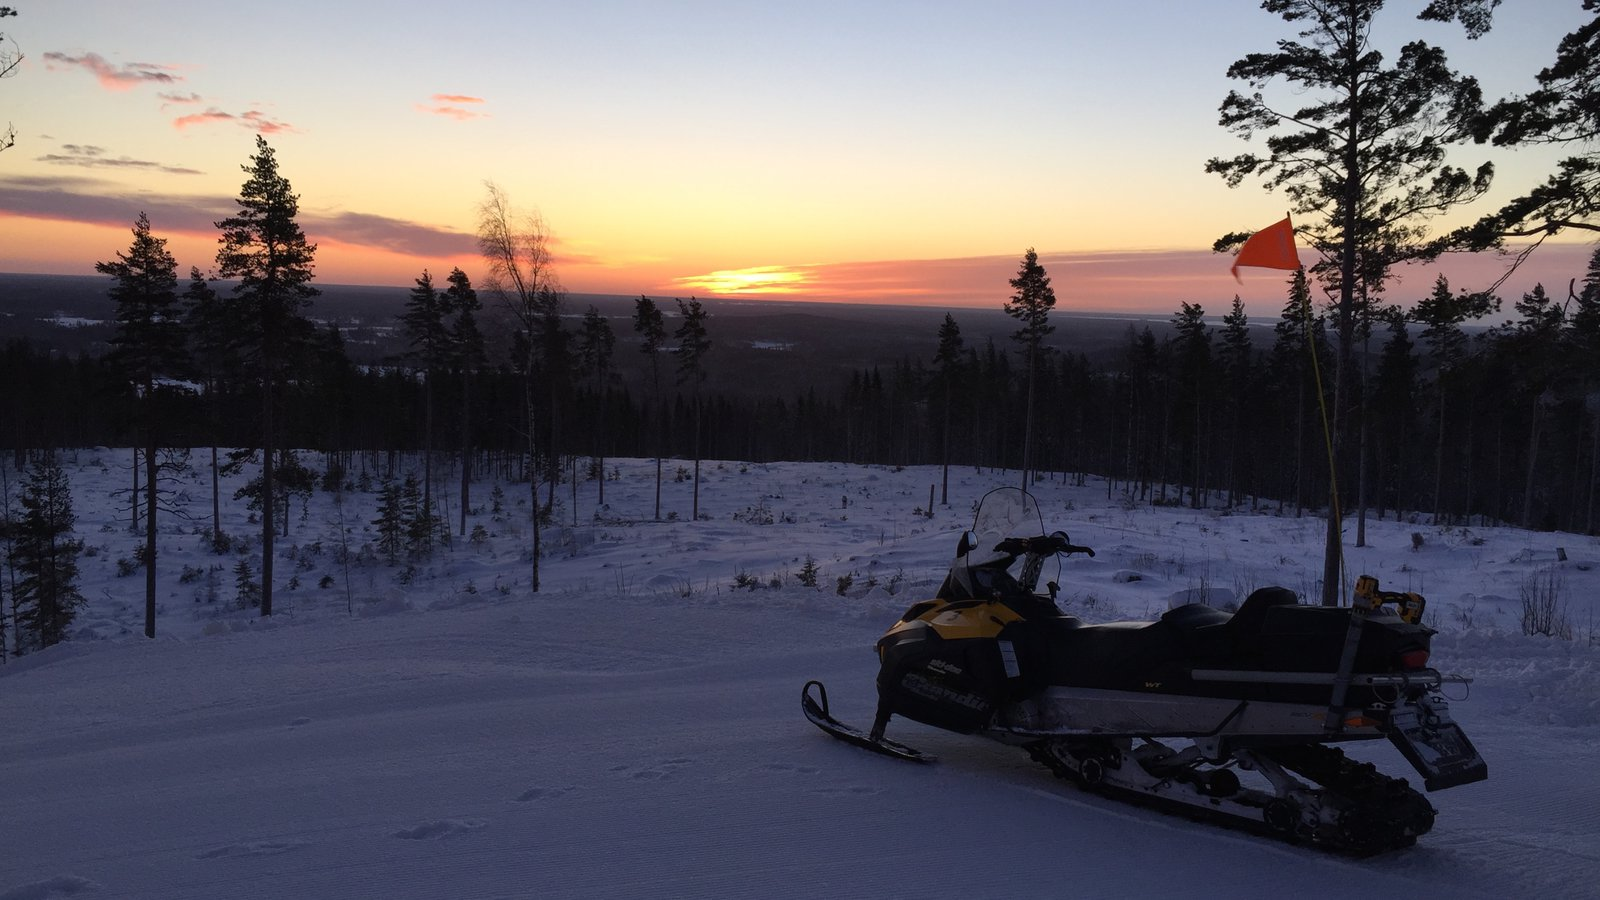 Kungsberget Ski Resort which includes snowmobiling, a sunset and snow